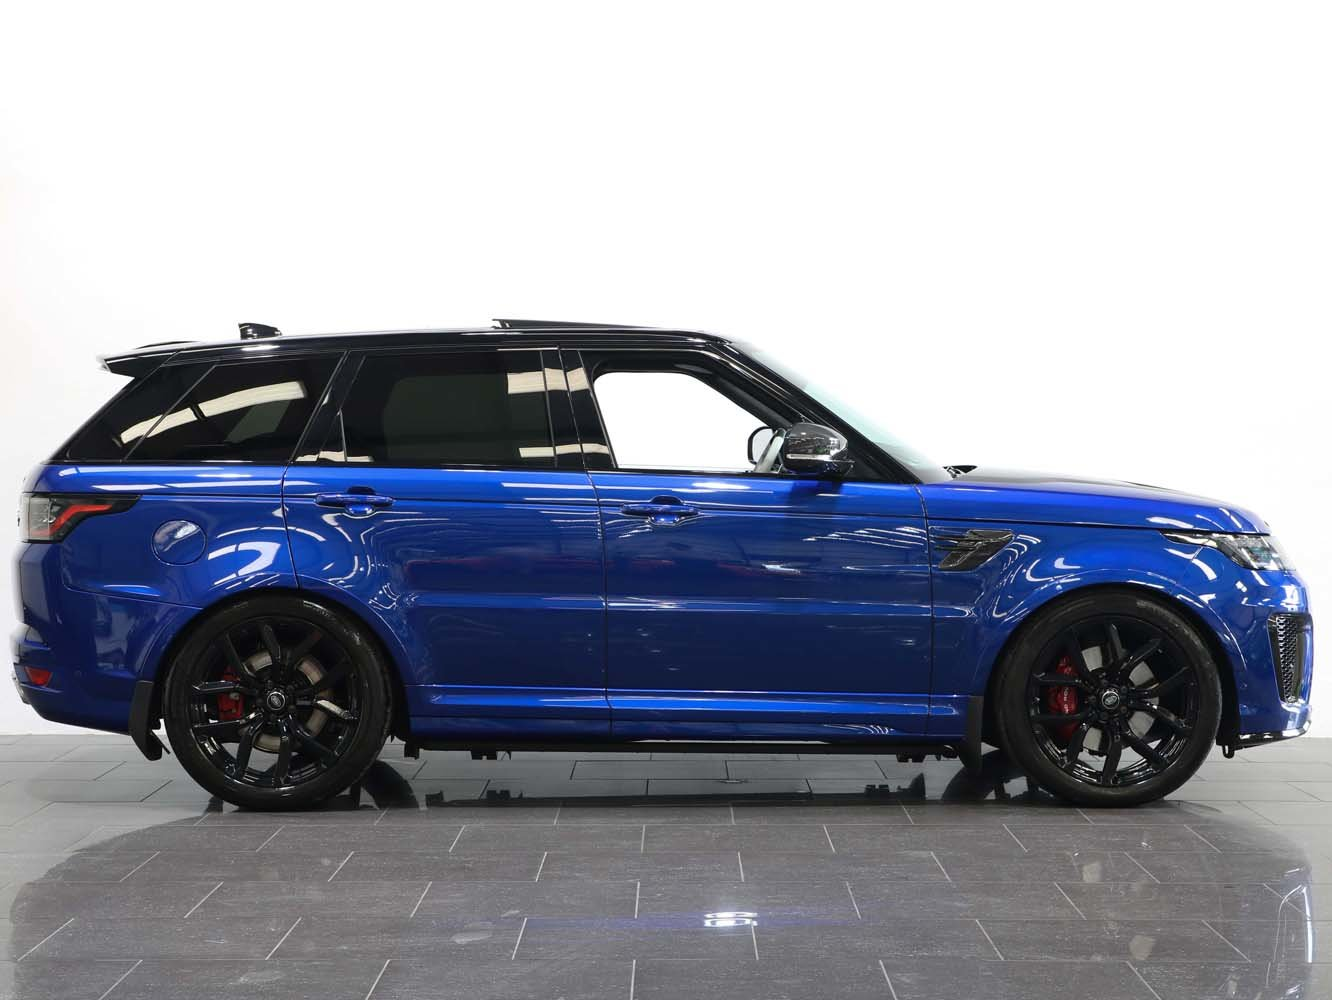 2019 19 69 RANGE ROVER SPORT 5.0 V8 SUPERCHARGED SVR AUTO For Sale (picture 2 of 6)